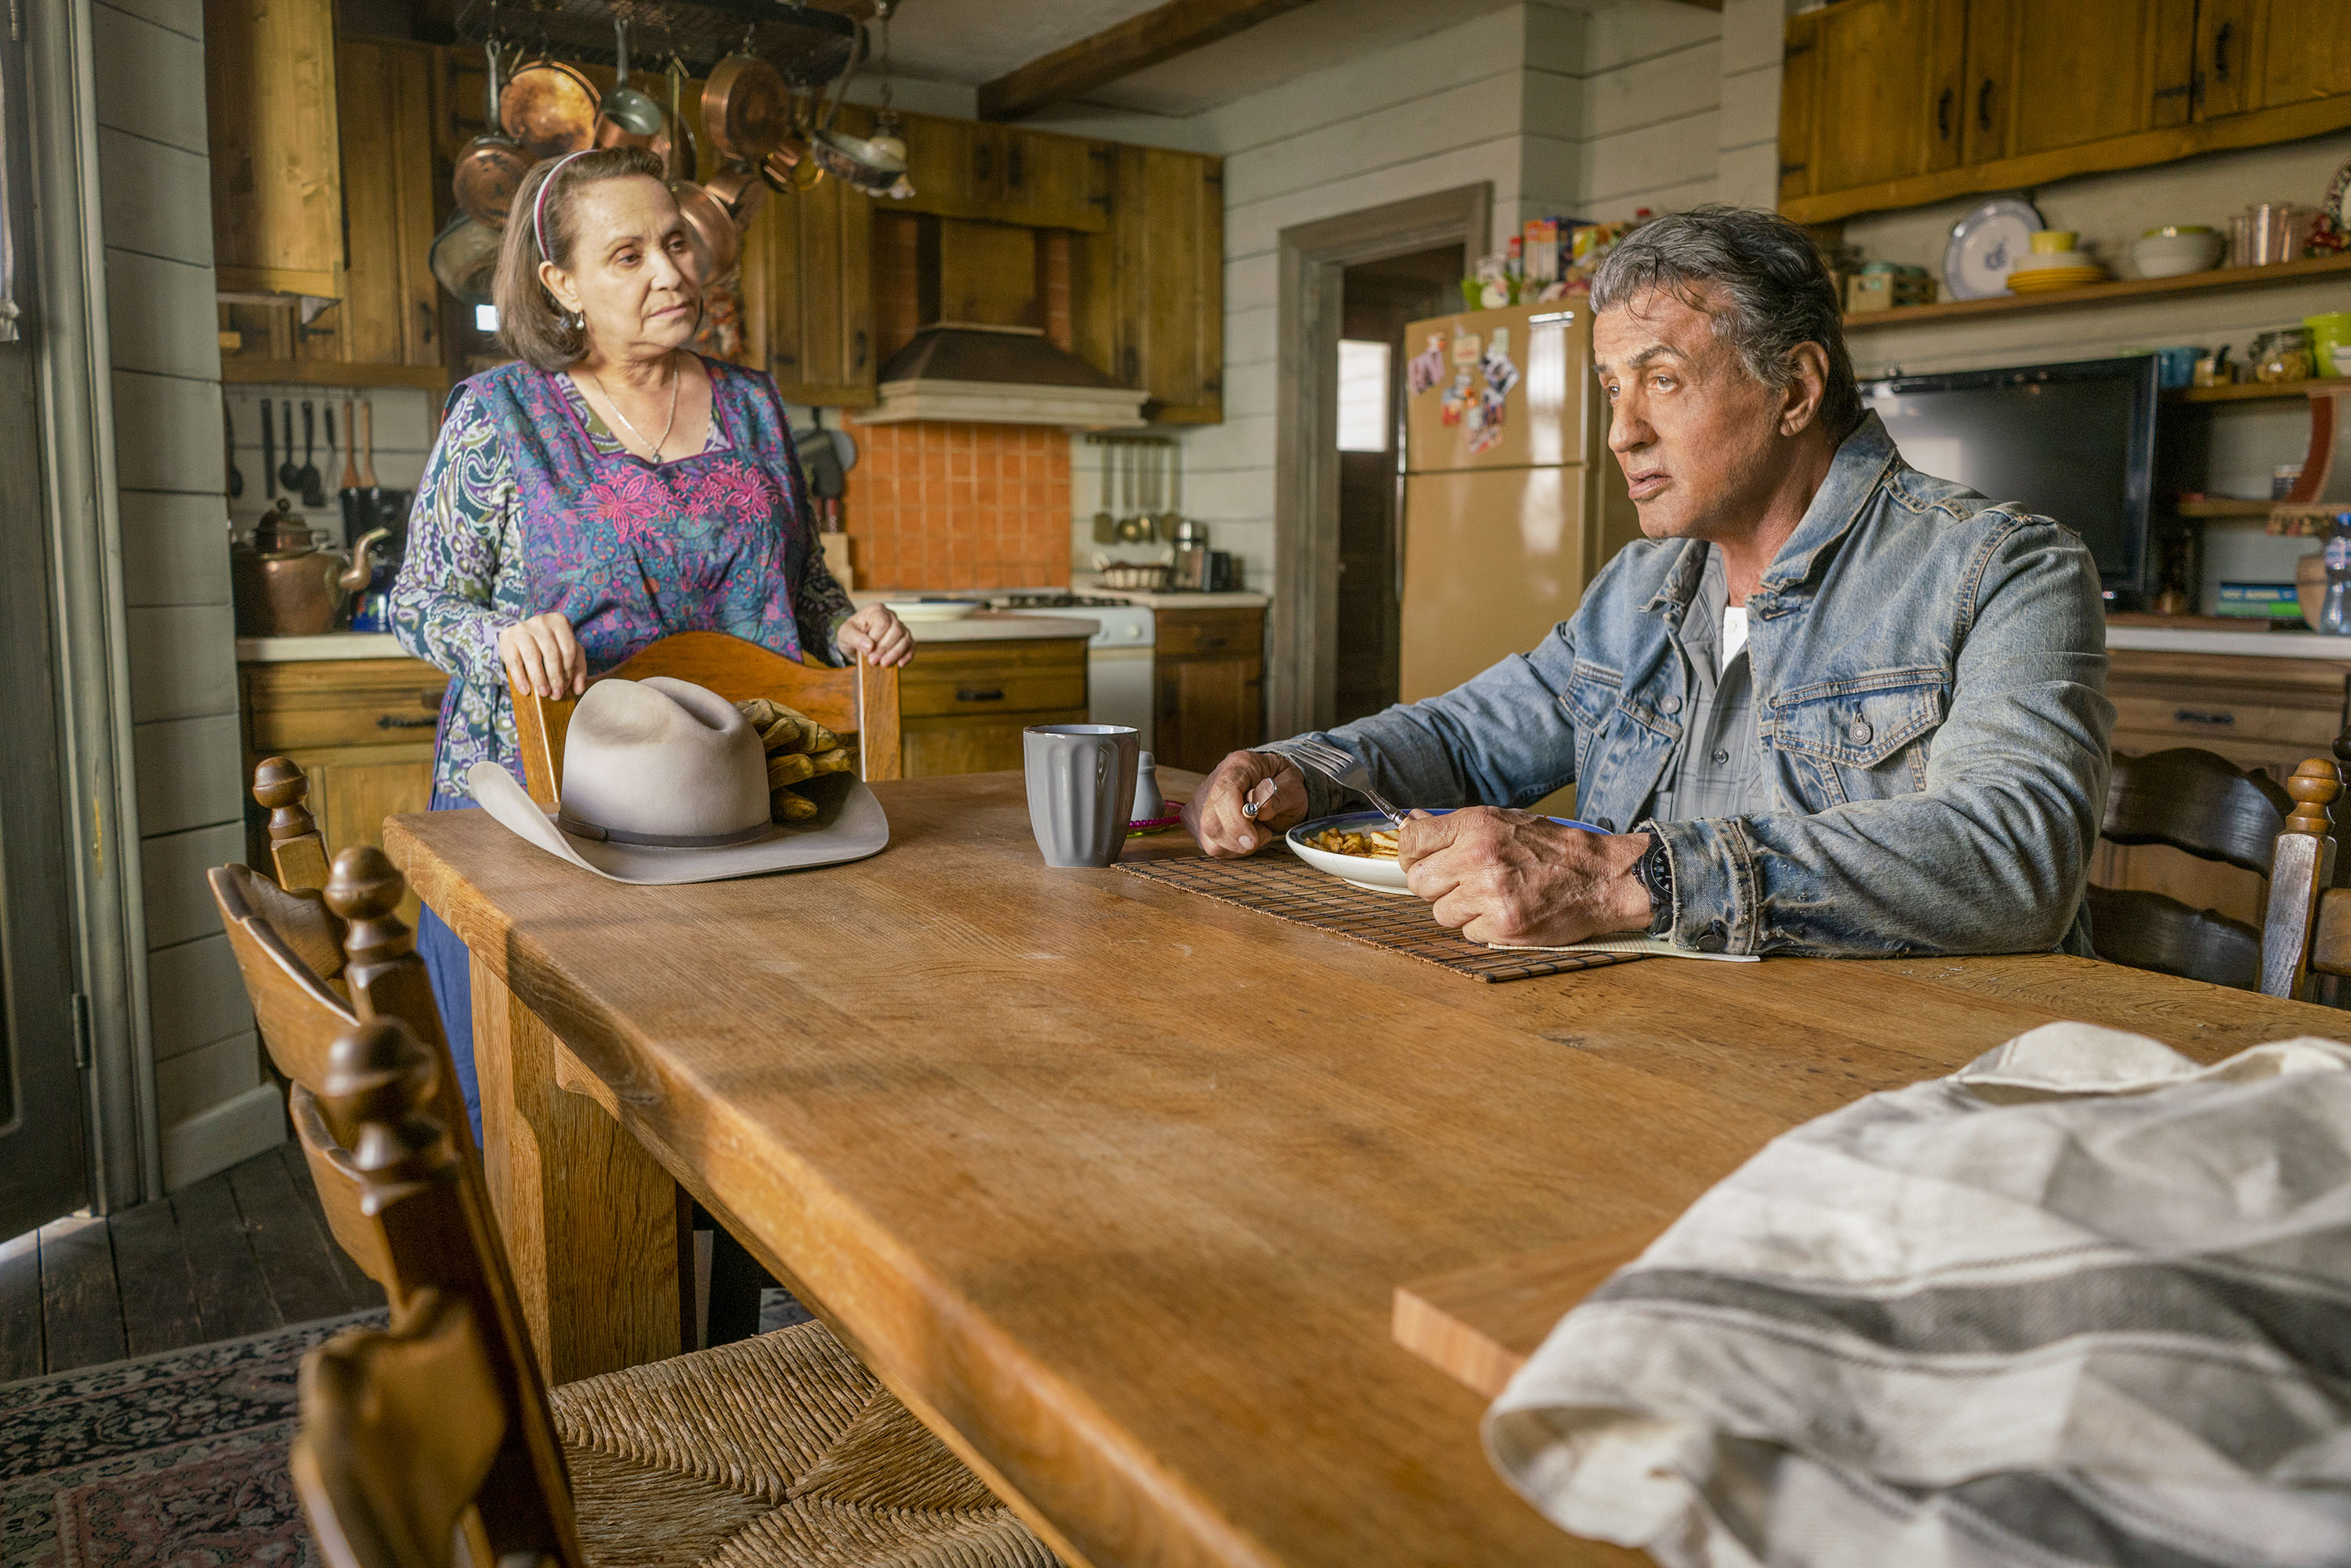 Adriana Barraza and Sylvester Stallone star in a scene from the movie